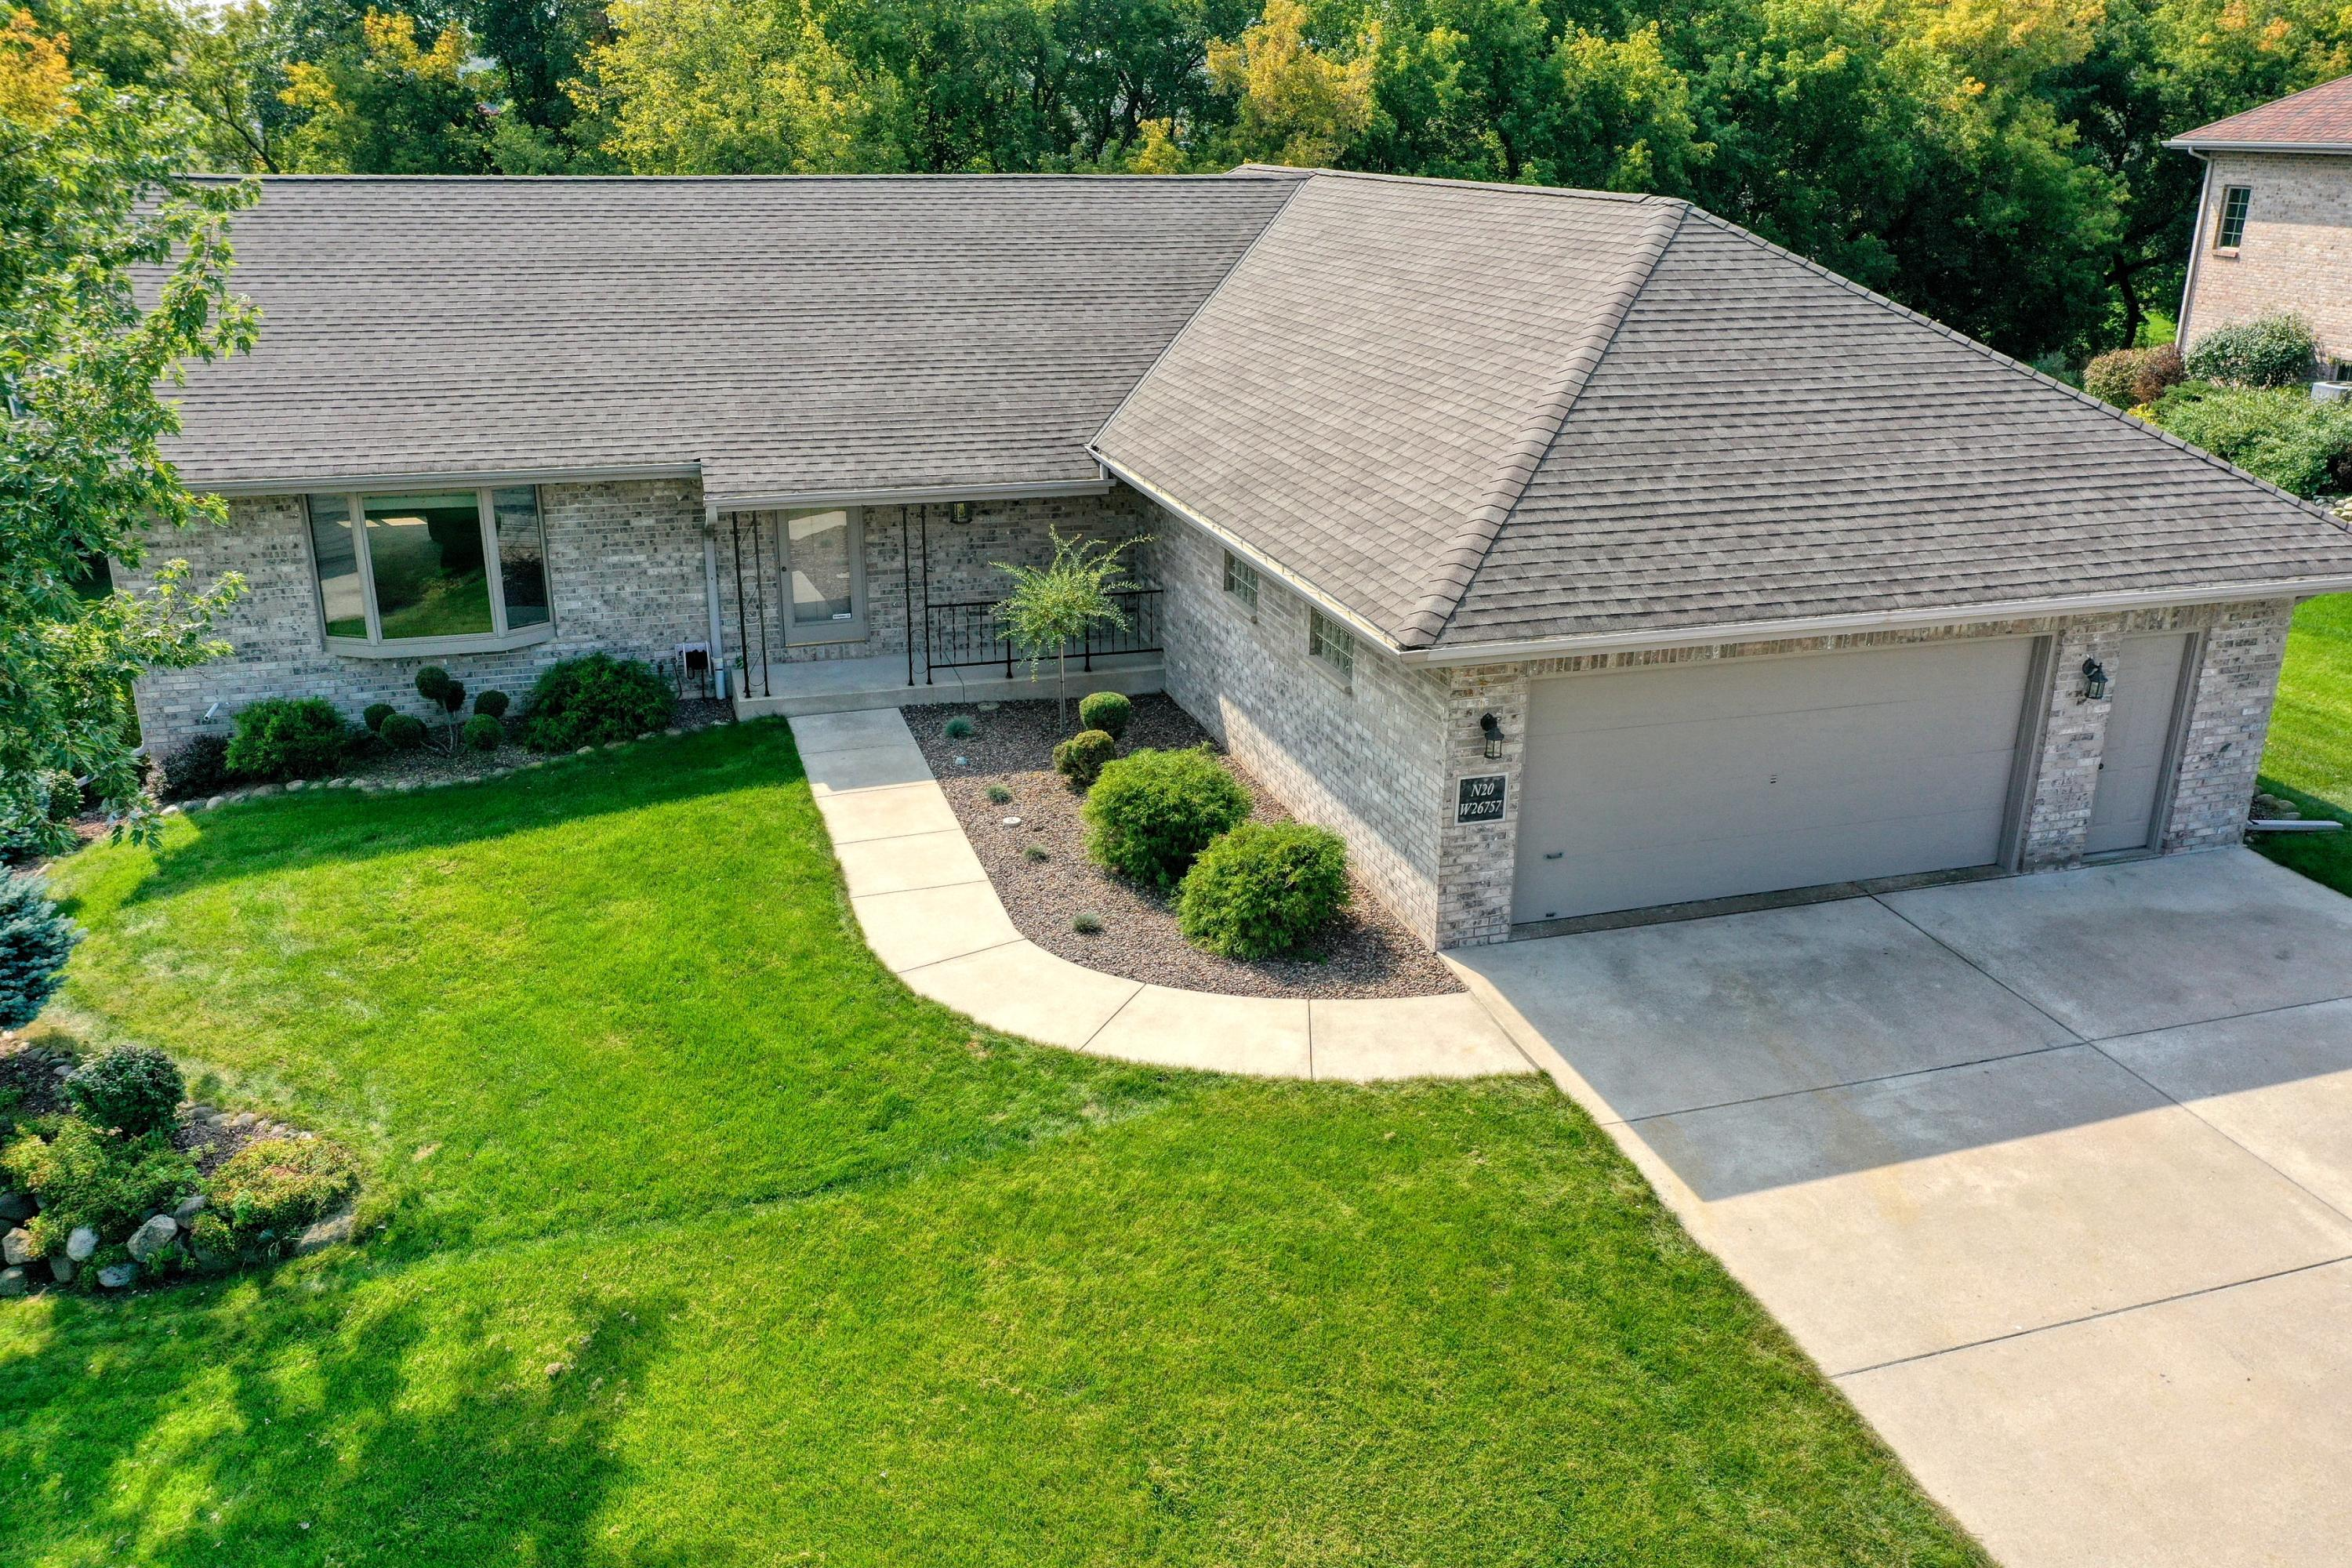 Photo of N20W26757 Sawgrass Ln, Pewaukee, WI 53072